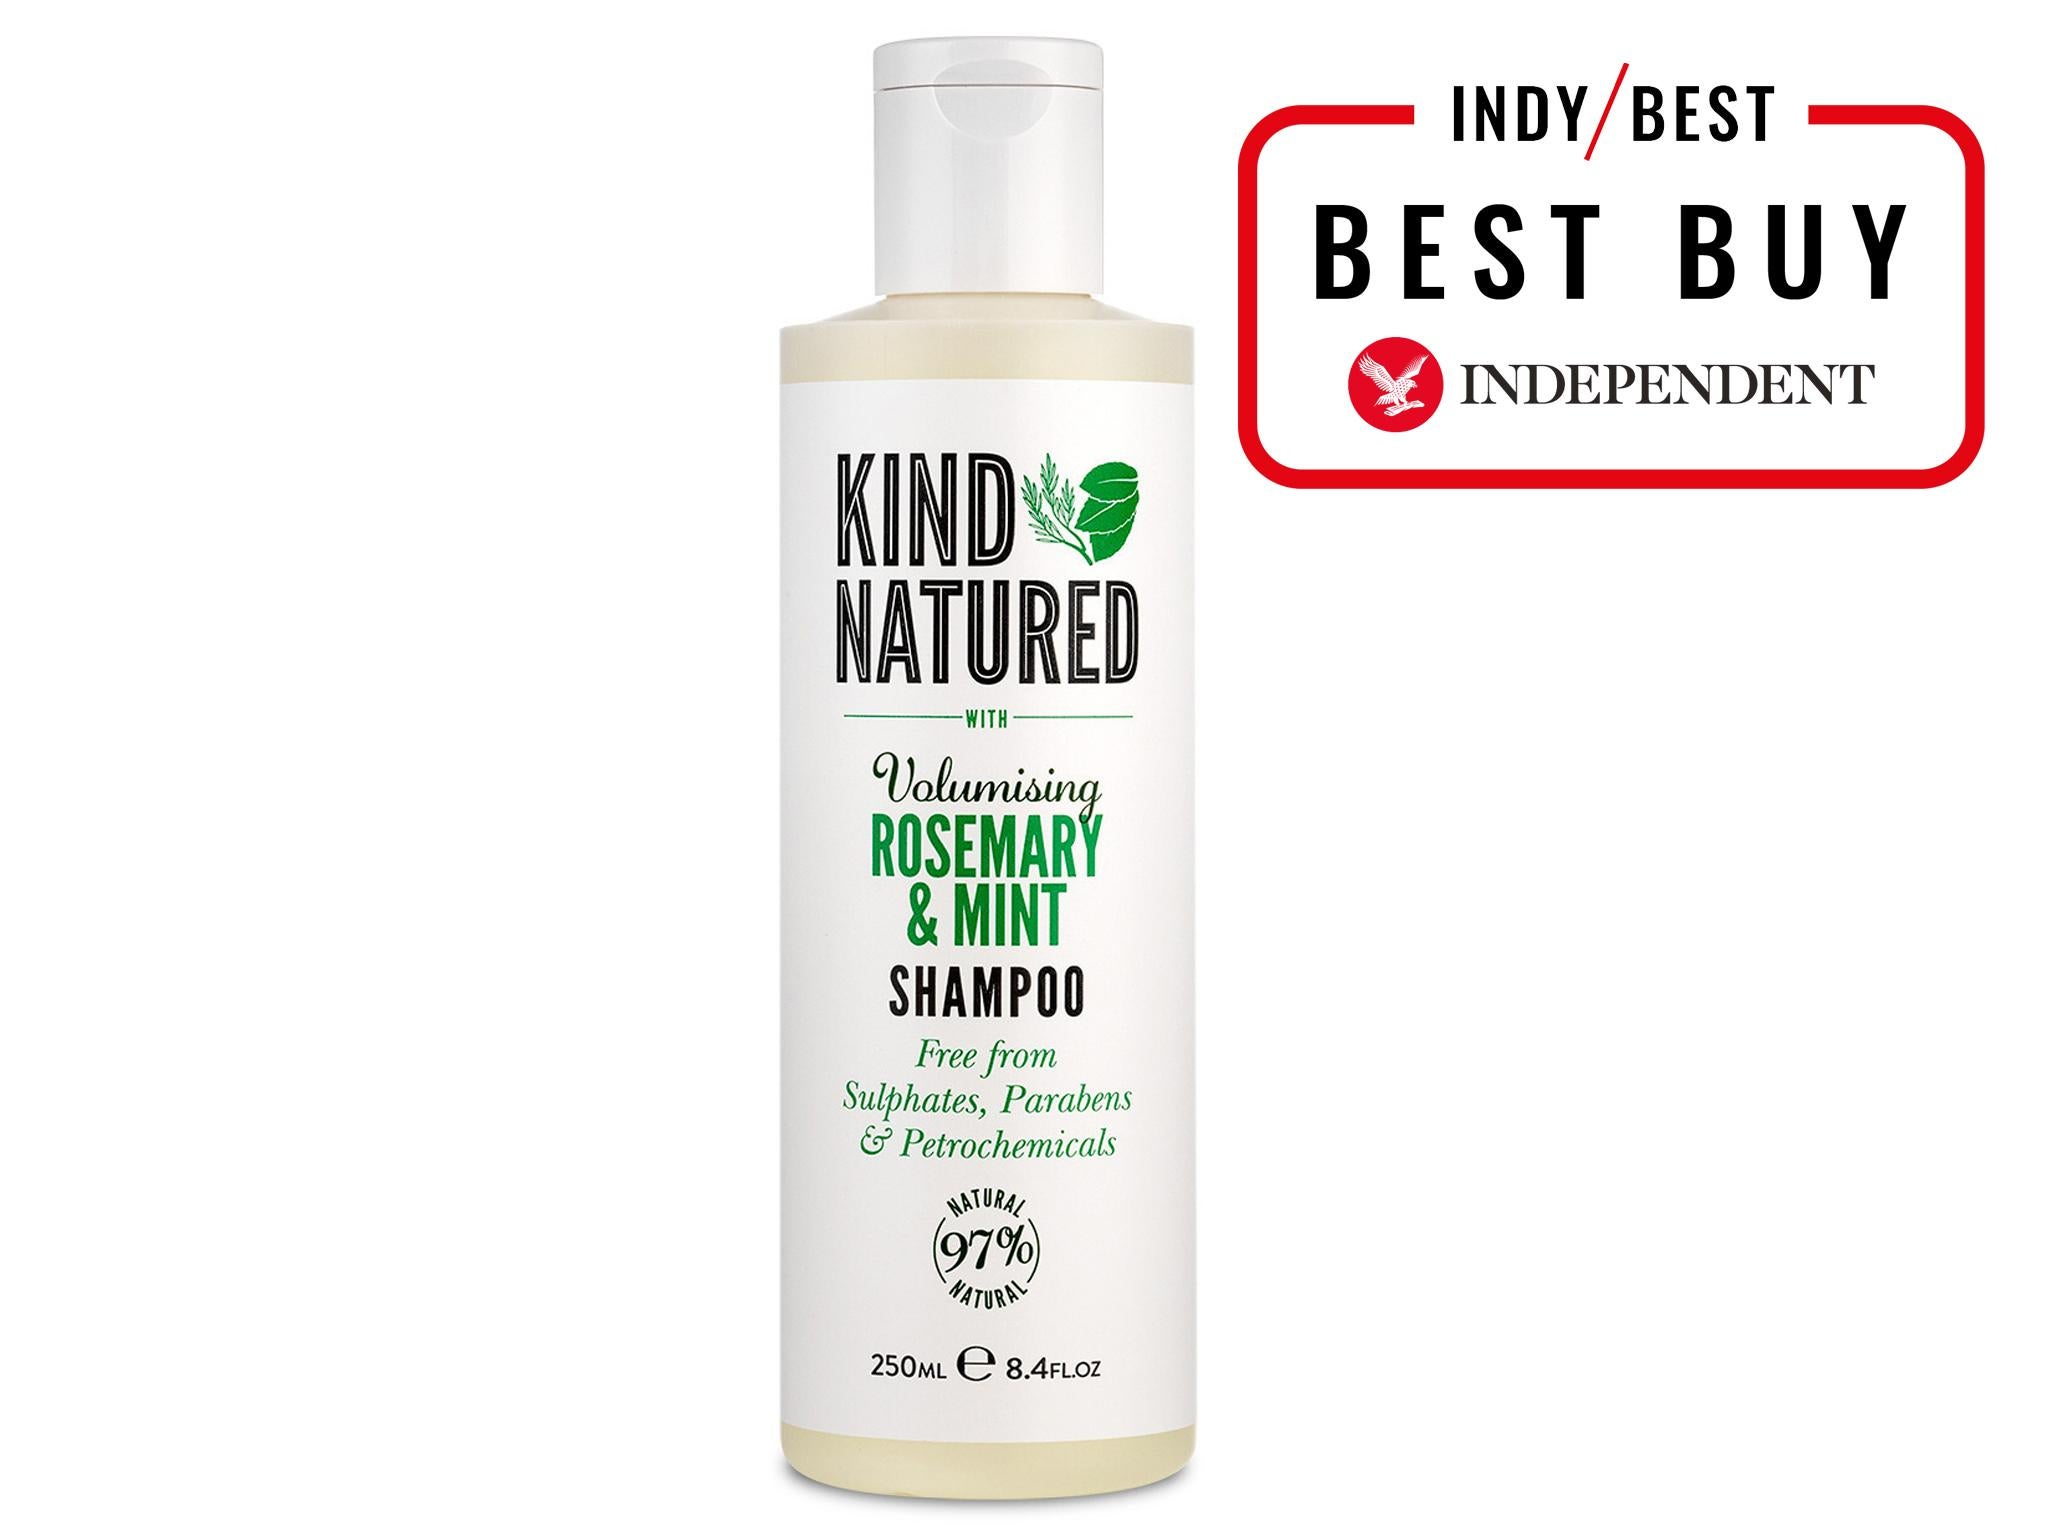 Best sulphate and paraben-free hair care products